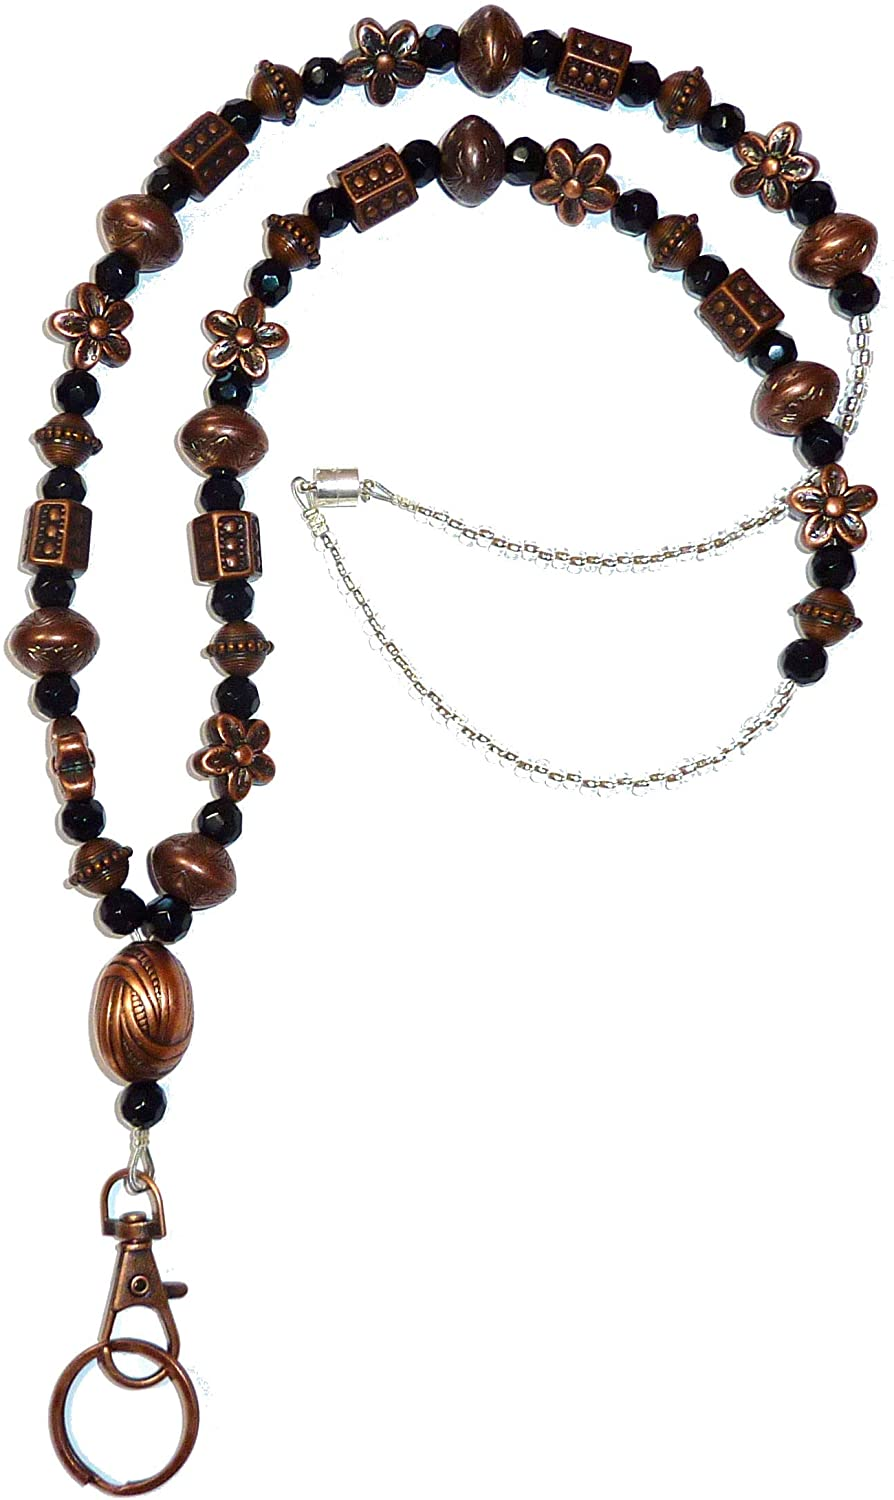 Hidden Hollow Beads Bronze Beauty Womens Fashion Necklace Jewelry Lanyard, 34 Inches for ID Badge Holder, Keys (Bronze & Black Beads - Magnetic Breakaway)